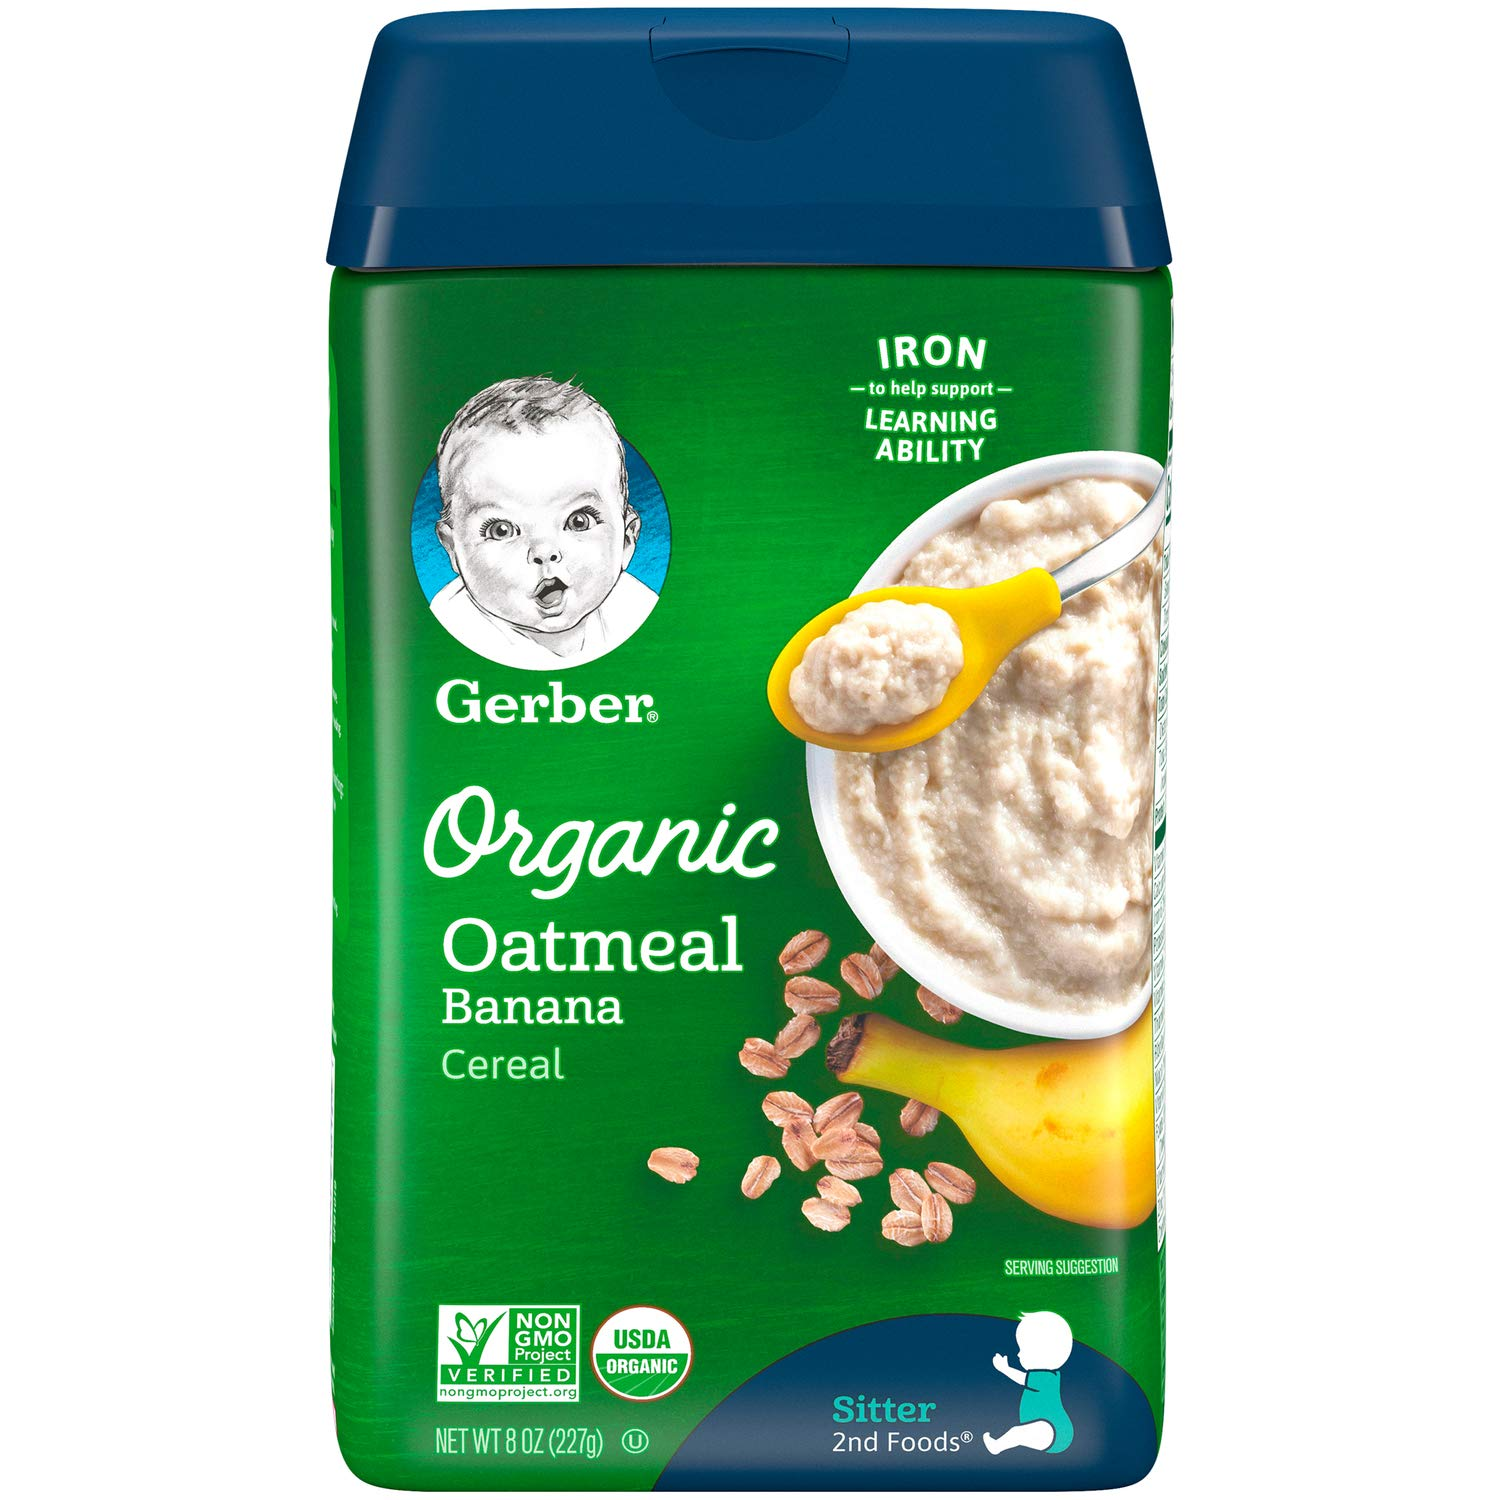 Gerber Baby Cereal Organic Oatmeal with Banana, 8 oz by Gerber Baby Cereal